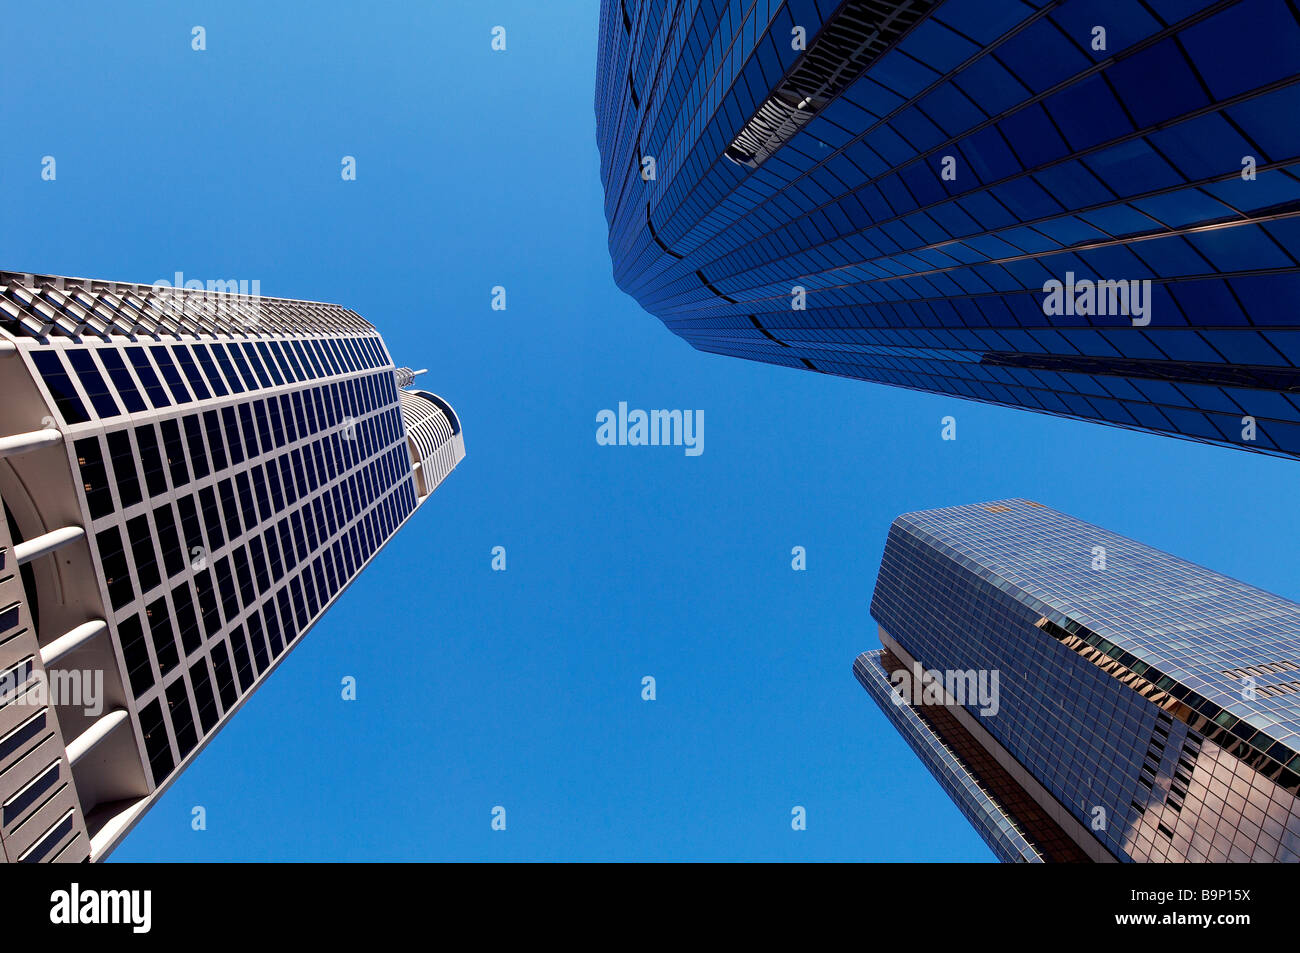 Brisbane Australia City Buildings - Stock Image